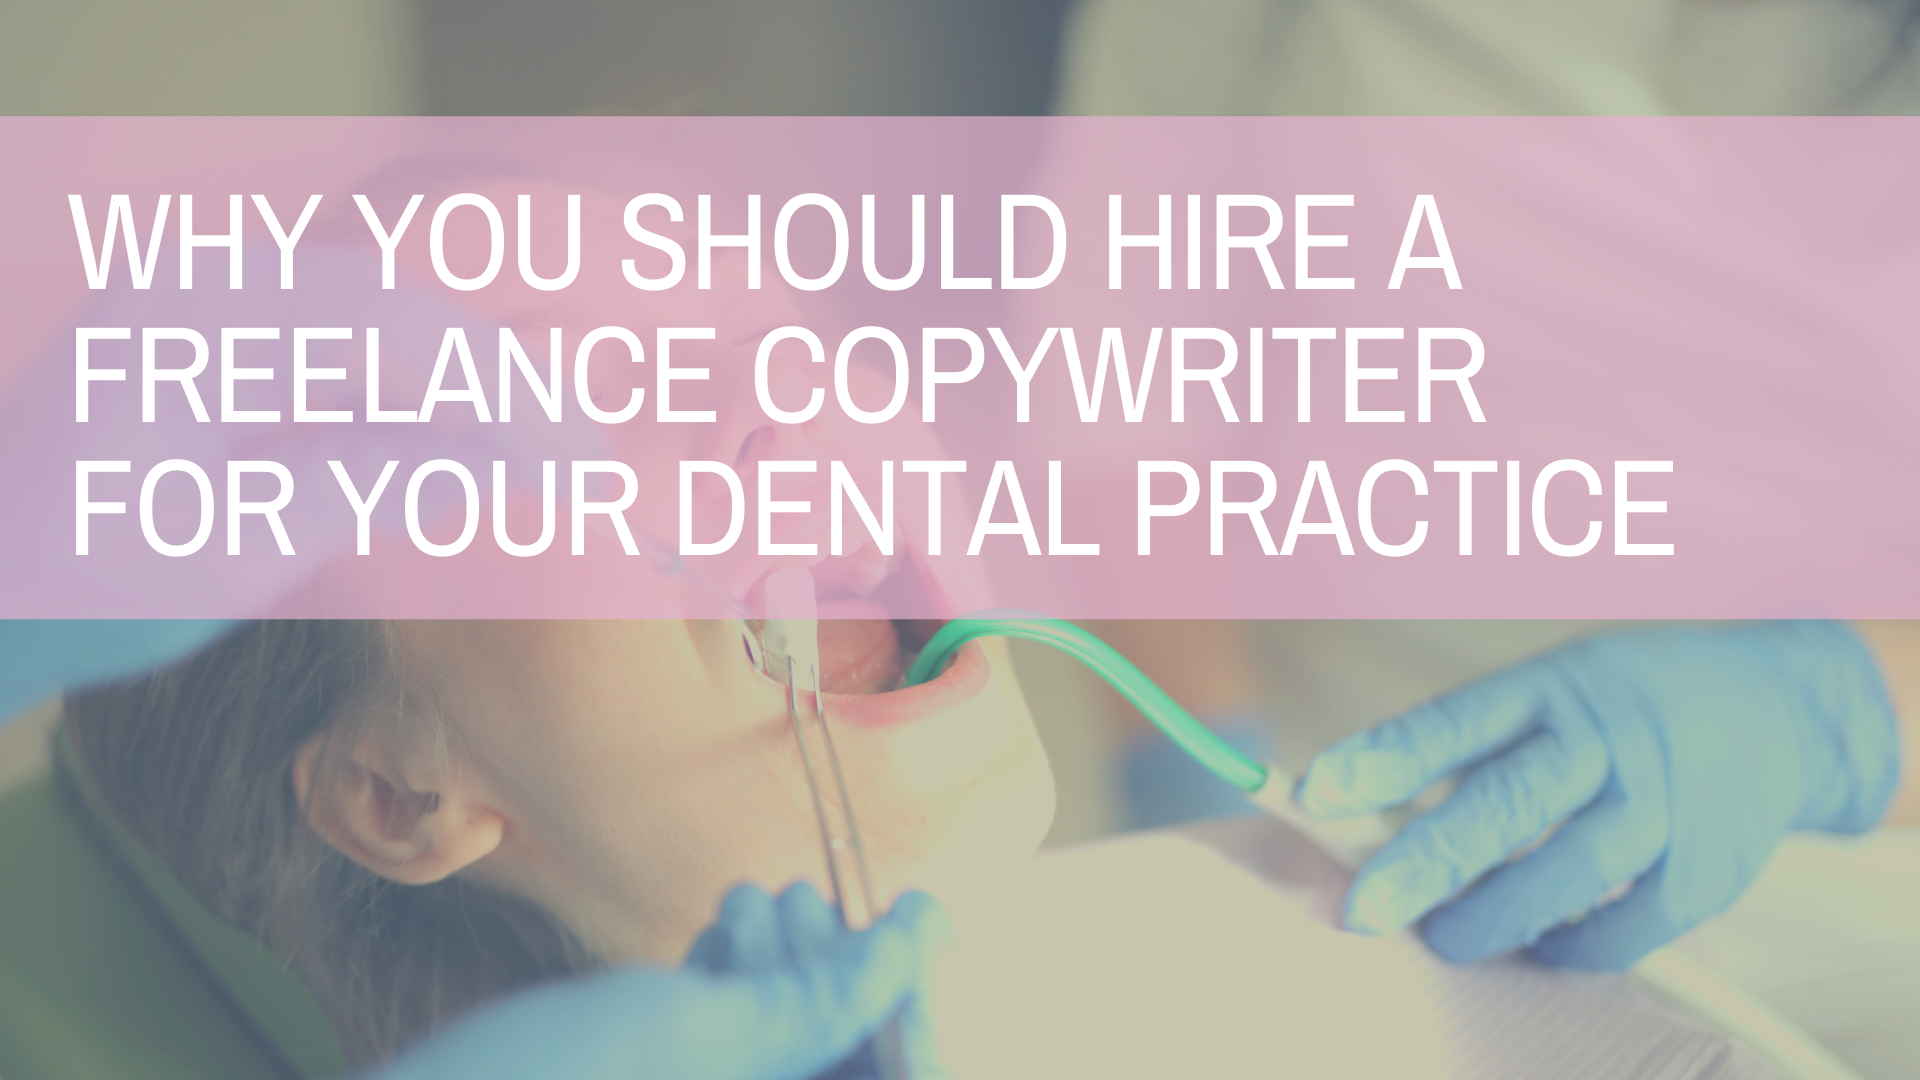 Three Reasons to Hire a Freelance Copywriter For Your Dental Practice